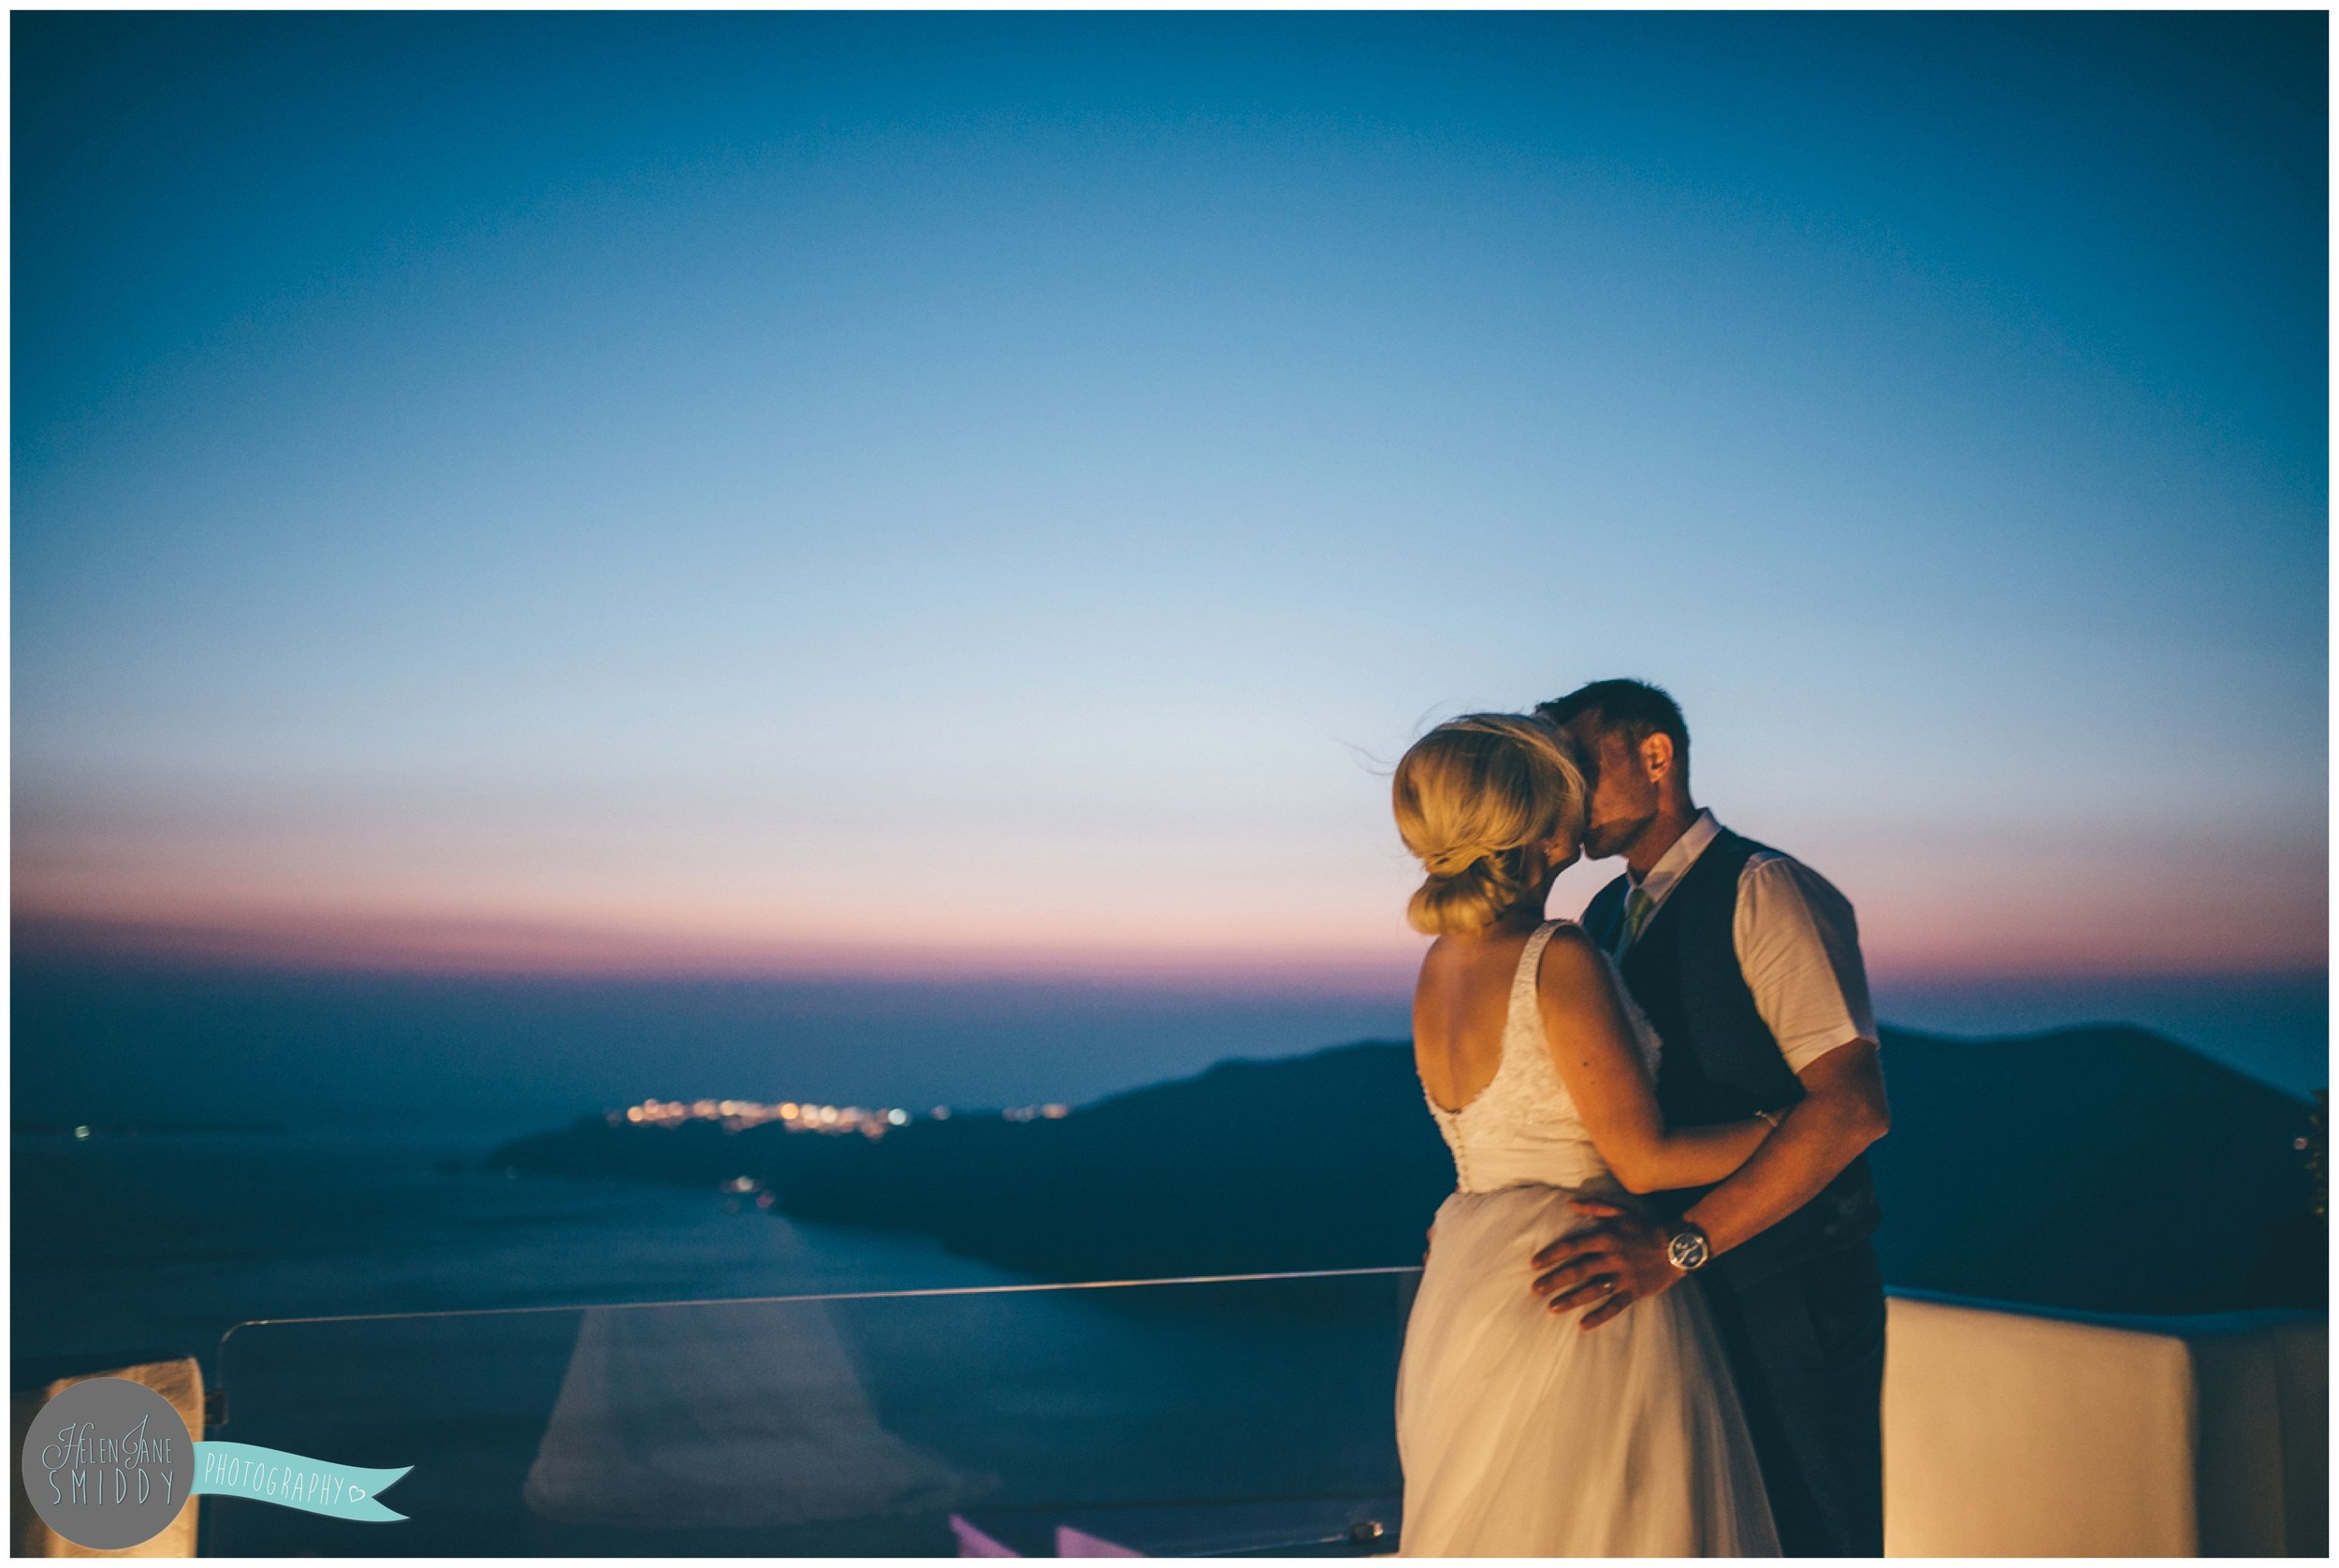 wedding-weddingphotographer-weddingphotographer-destinationwedding-destinationweddingphotographer-destinationweddingphotography-greece-santorini-thira-fira-leciel-brideandgroom-bride-groom-santoriniwedding-weddingspeech-weddingspeeches-speeches-newlyweds-weddingbouquet-cheshire-cheshirewedding-cheshireweddingphotographer-cheshireweddingphotography-bridalparty-weddingparty-sunset